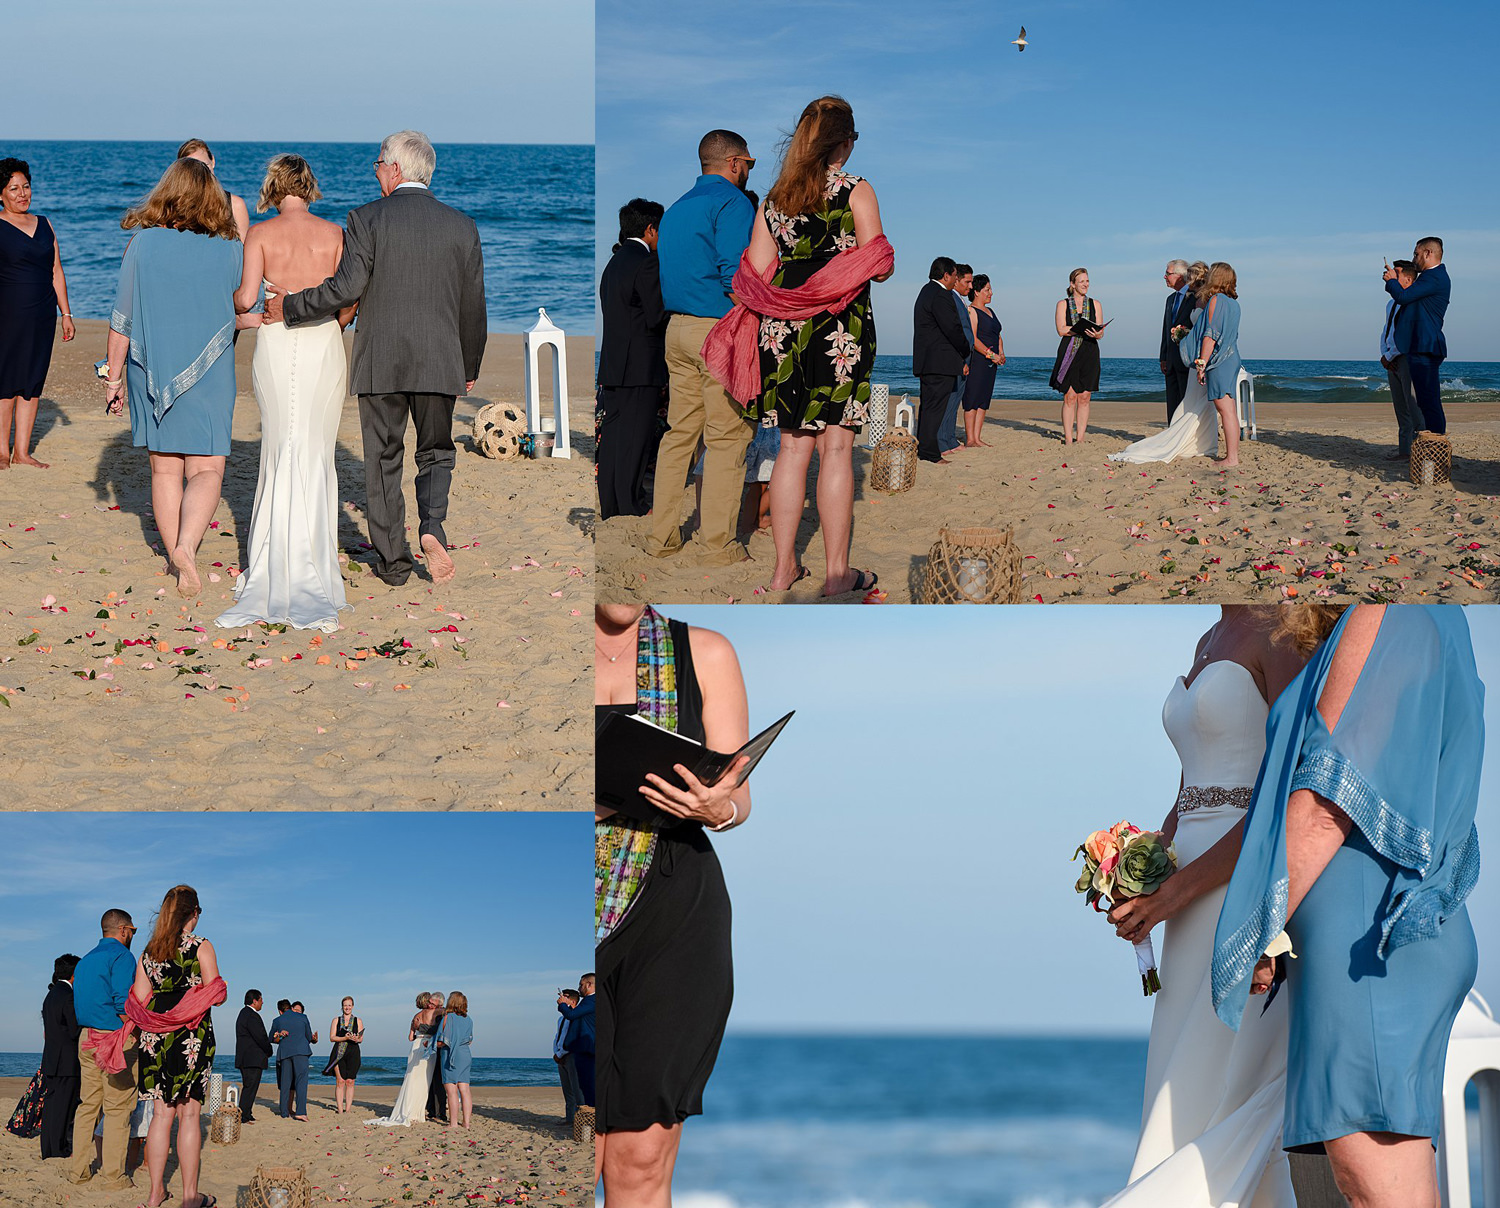 beach-wedding-inspiration-sandbridge-va-wedding-photographer-melissa-bliss-photography.jpg